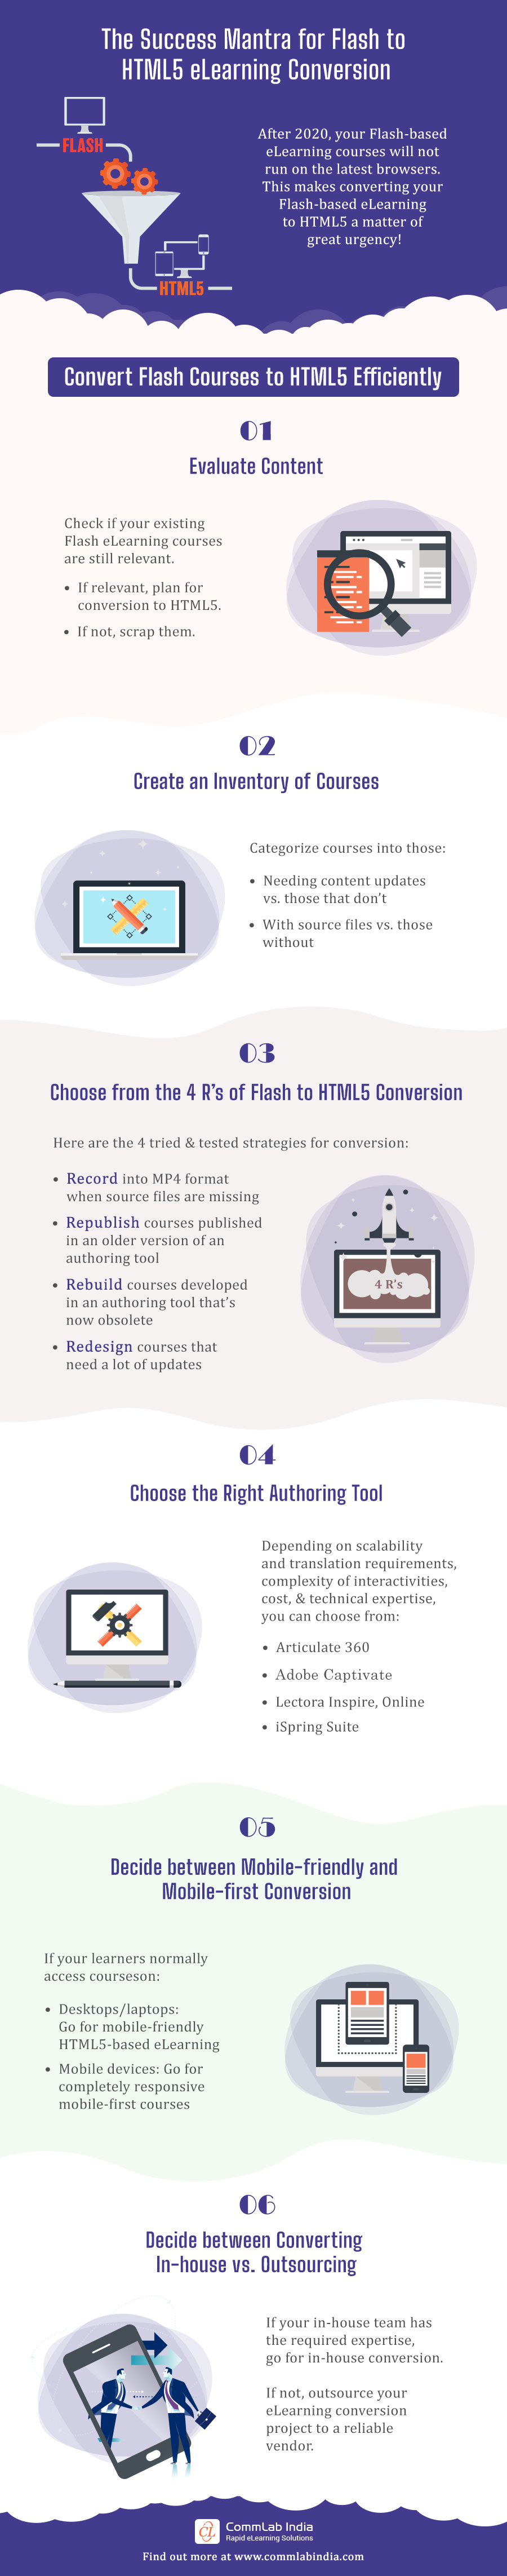 Flash to HTML5 eLearning Conversion: 6 Steps to Success